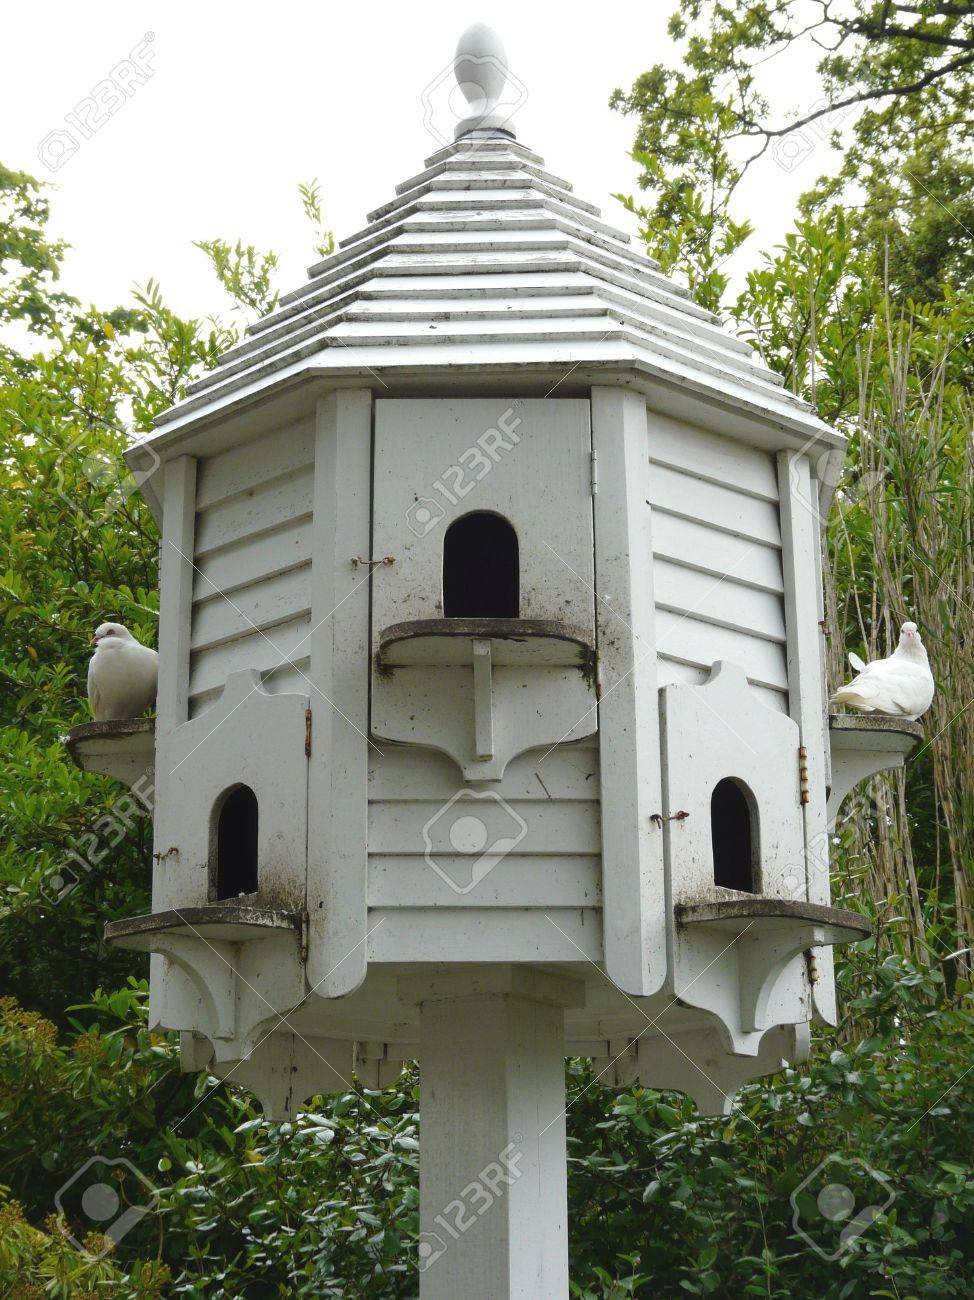 Pigeon house plans and photos - White Wooden Dovecot For Pigeons With Small Arched Doorways Stock Photo 5648981